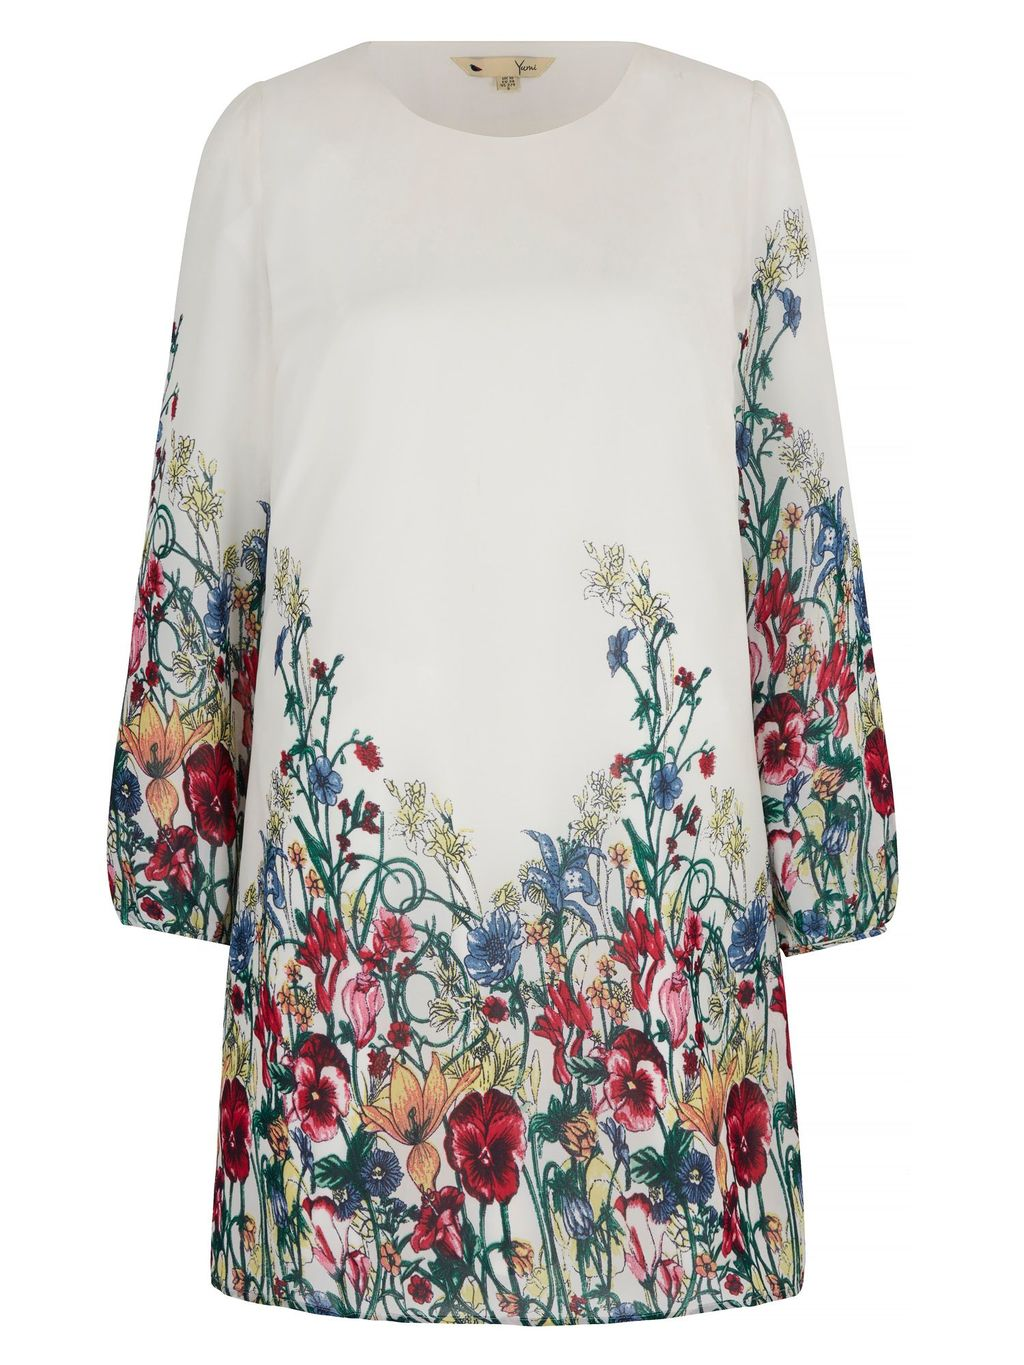 Wild Floral Print Tunic Dress, Ivory - style: shift; length: mid thigh; predominant colour: ivory/cream; occasions: casual; fit: straight cut; fibres: polyester/polyamide - 100%; neckline: crew; sleeve length: long sleeve; sleeve style: standard; texture group: crepes; pattern type: fabric; pattern size: light/subtle; pattern: florals; secondary colour: raspberry; multicoloured: multicoloured; season: s/s 2016; wardrobe: highlight